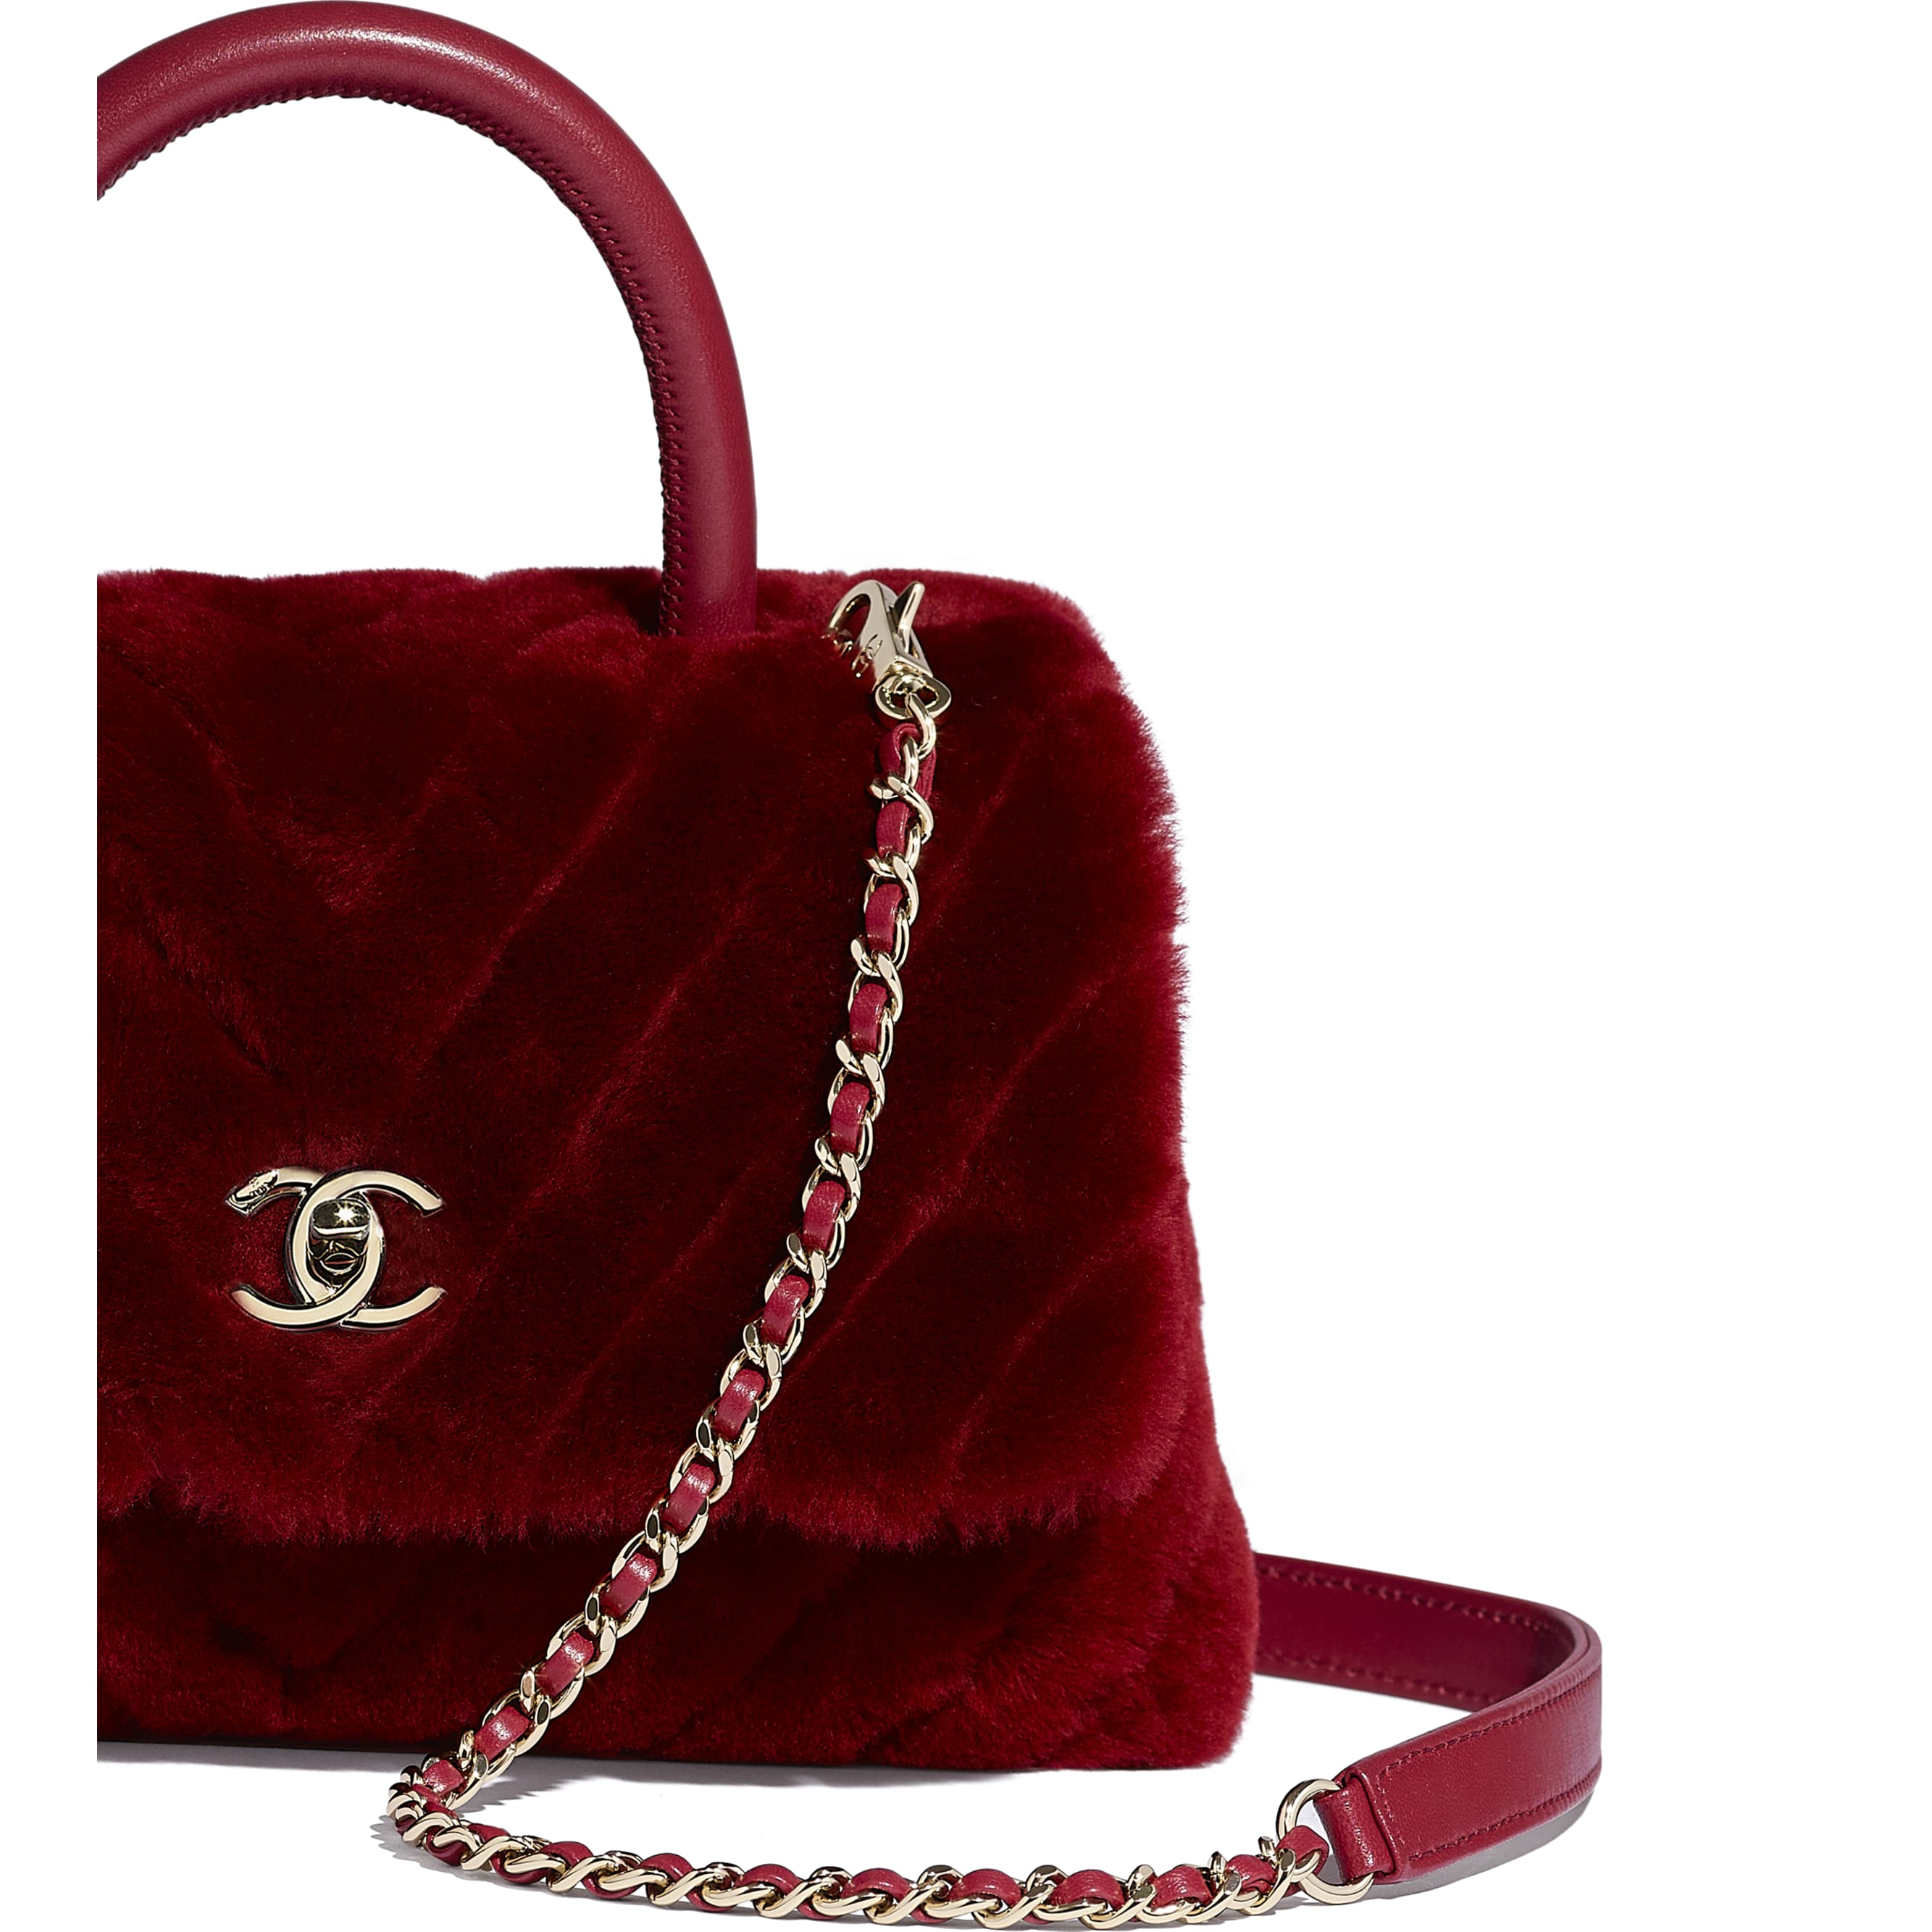 Small Flap Bag With Top Handle - Burgundy - Shearling Lambskin, Lambskin &Gold-Tone Metal - Extra view - see standard sized version